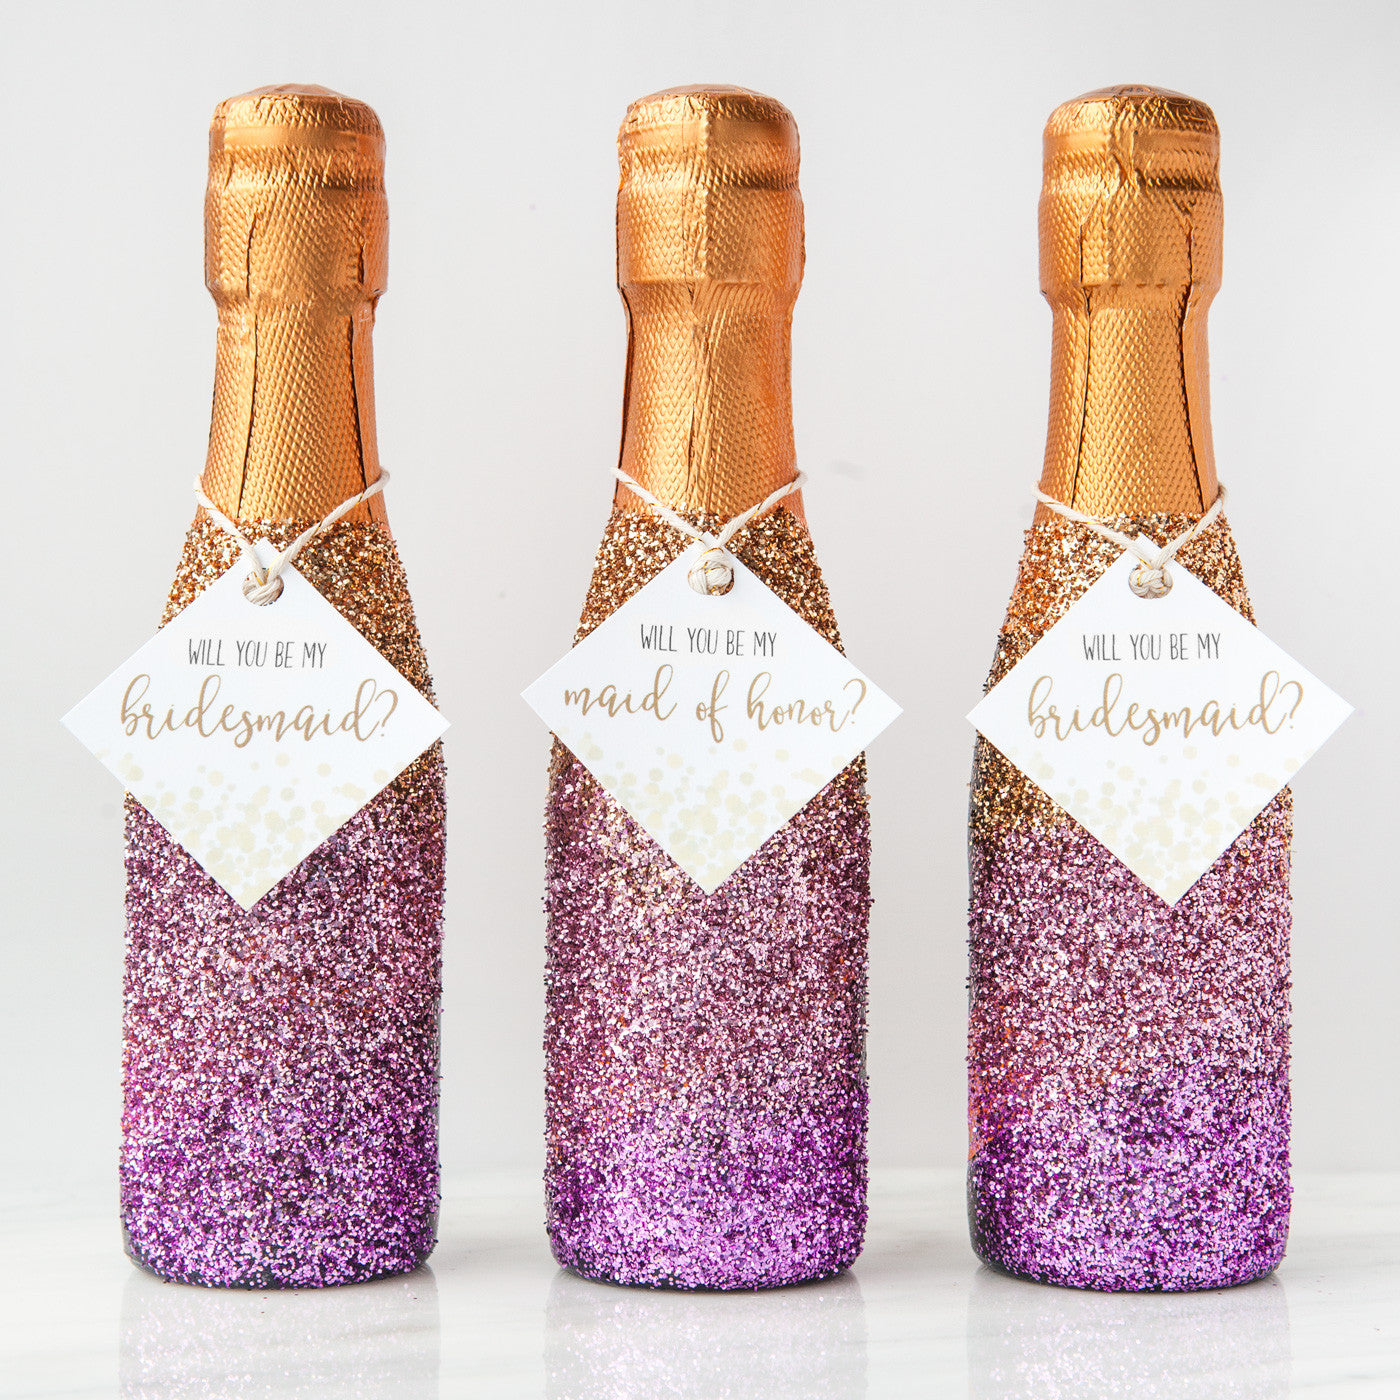 DIY Glitter Champagne Bottle Bridesmaid Proposal (with FREE printables!)